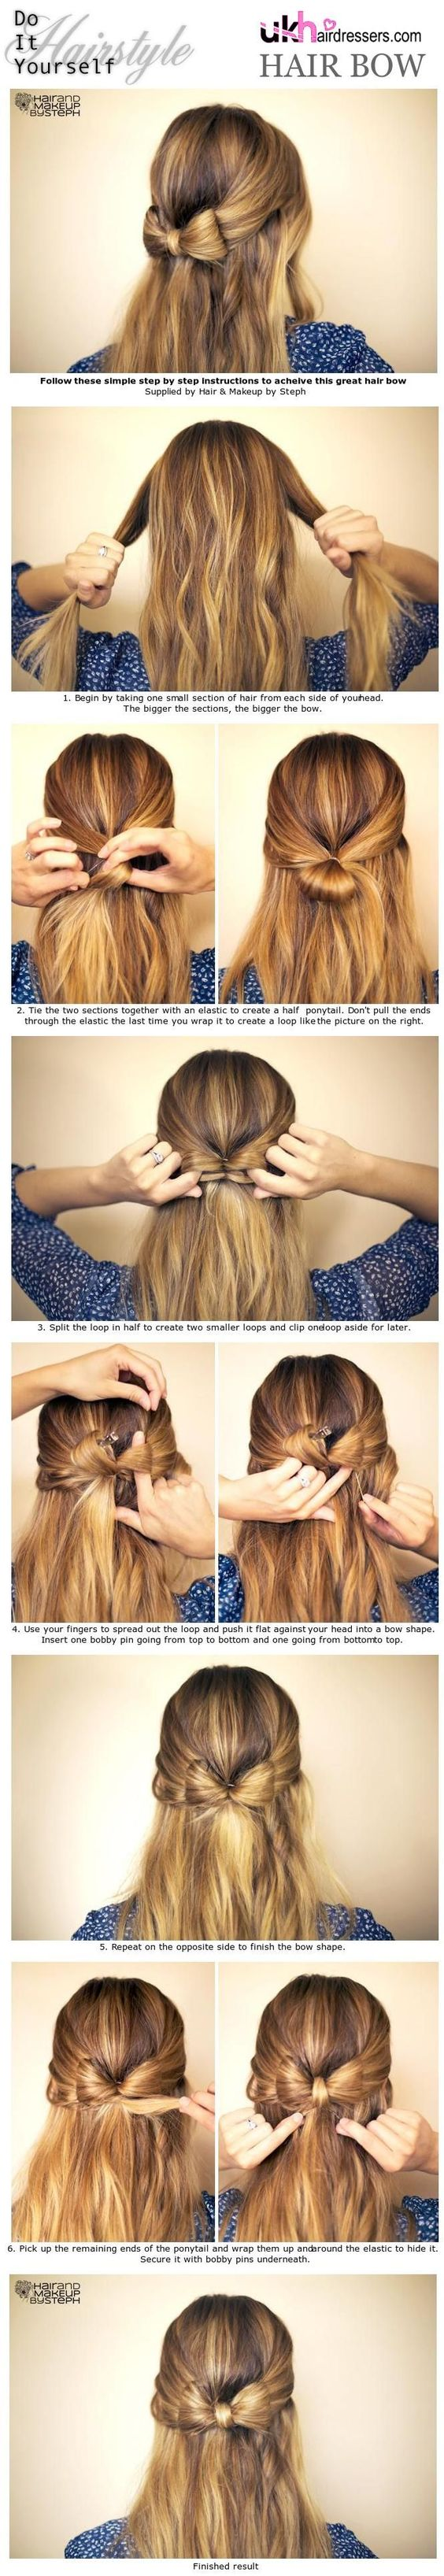 15 Easy Concert Hairstyles To Rock At Your Next Show Vivid